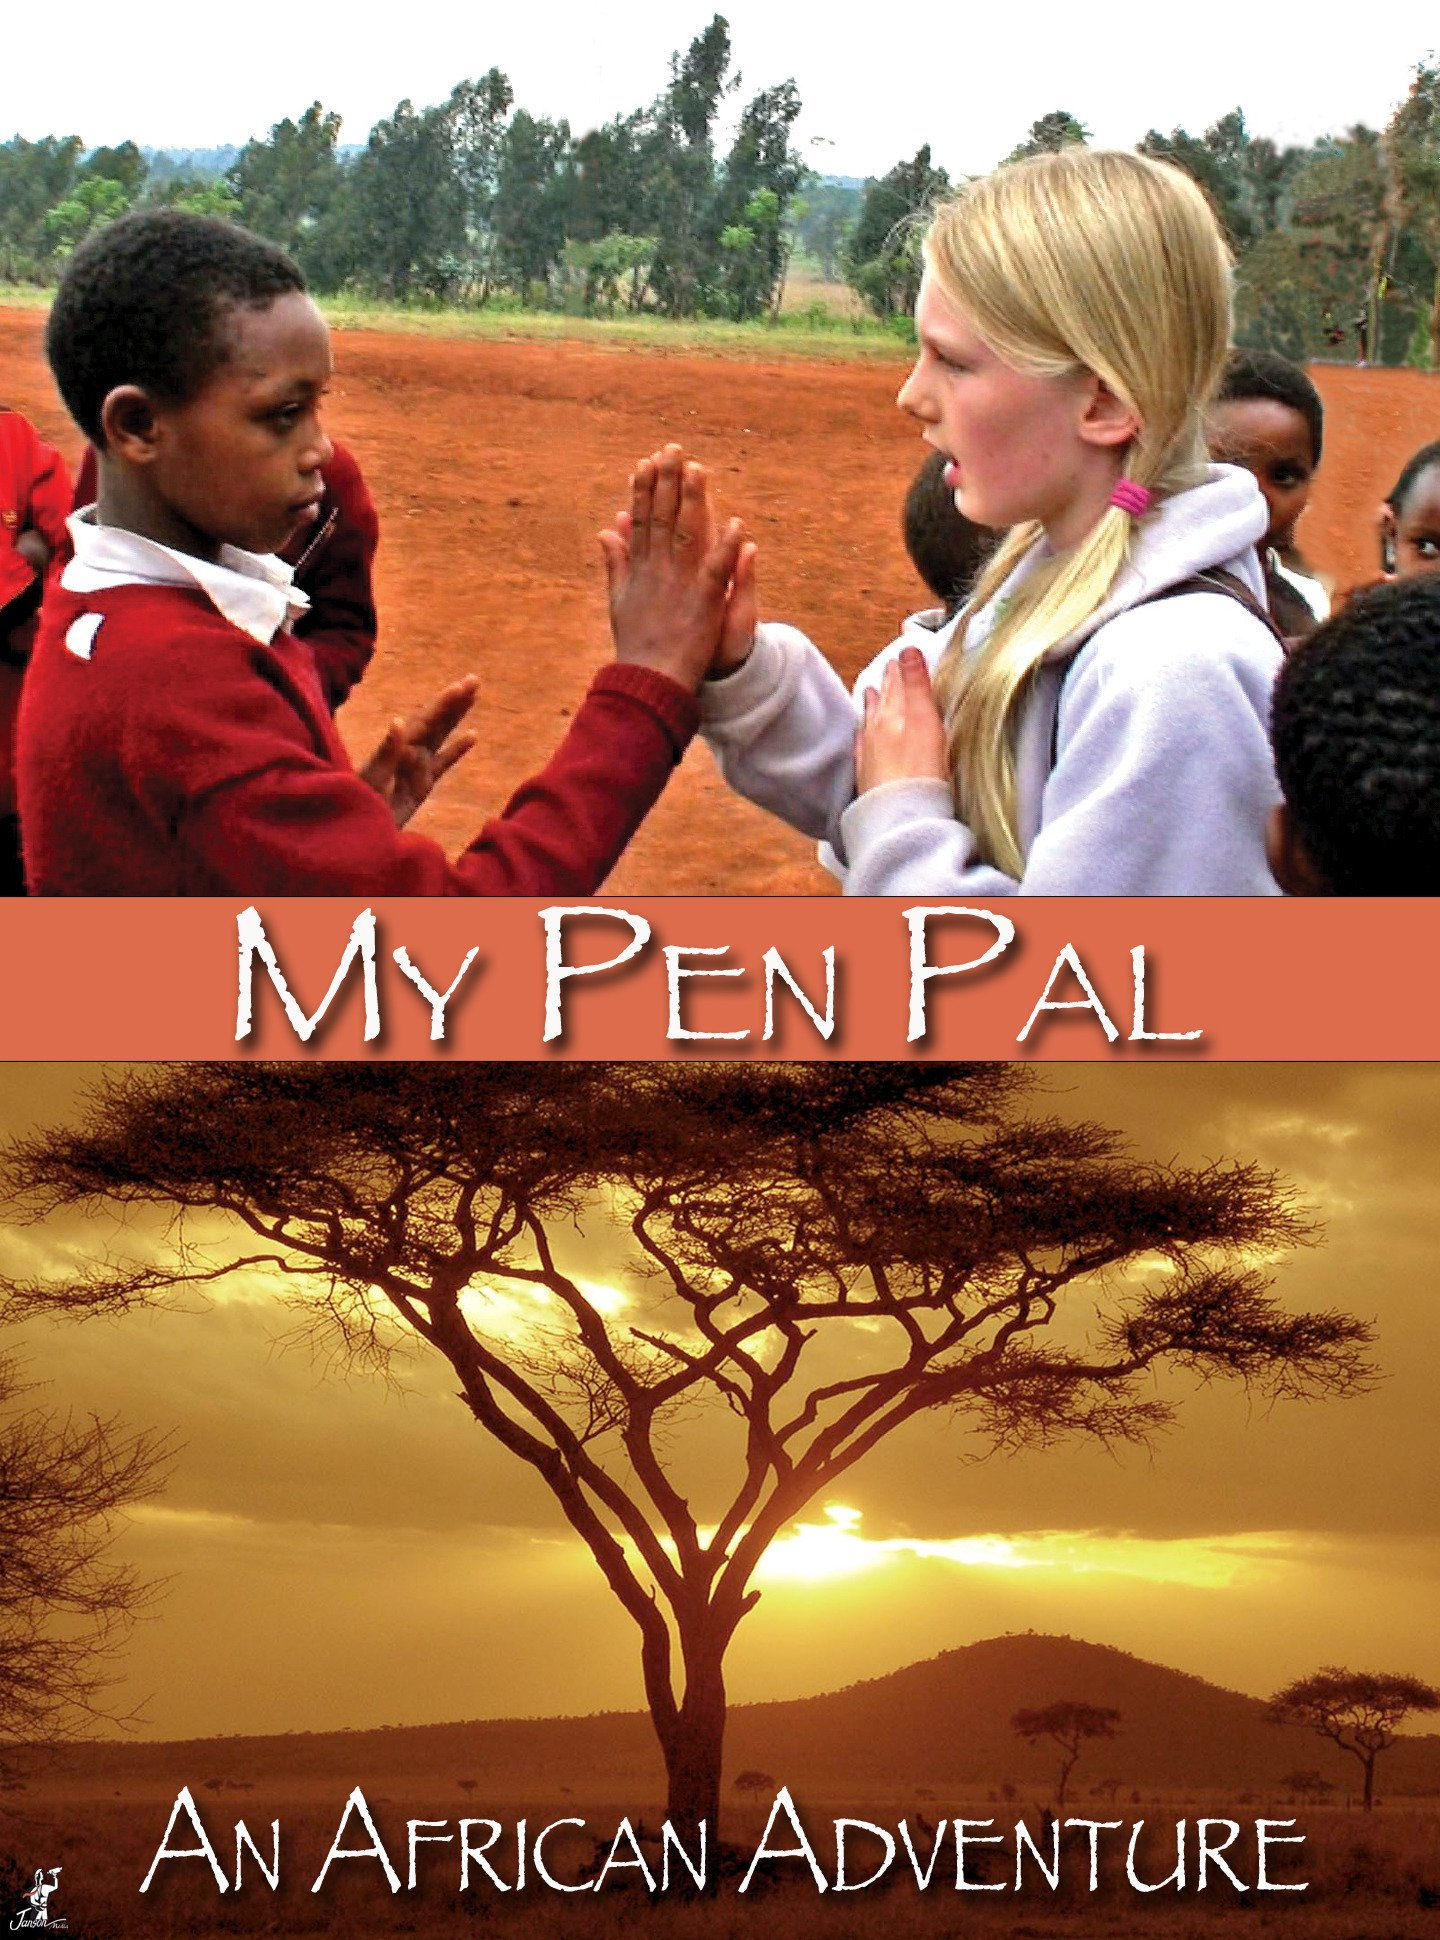 My Pen Pal: An African Adventure on Amazon Prime Instant Video UK